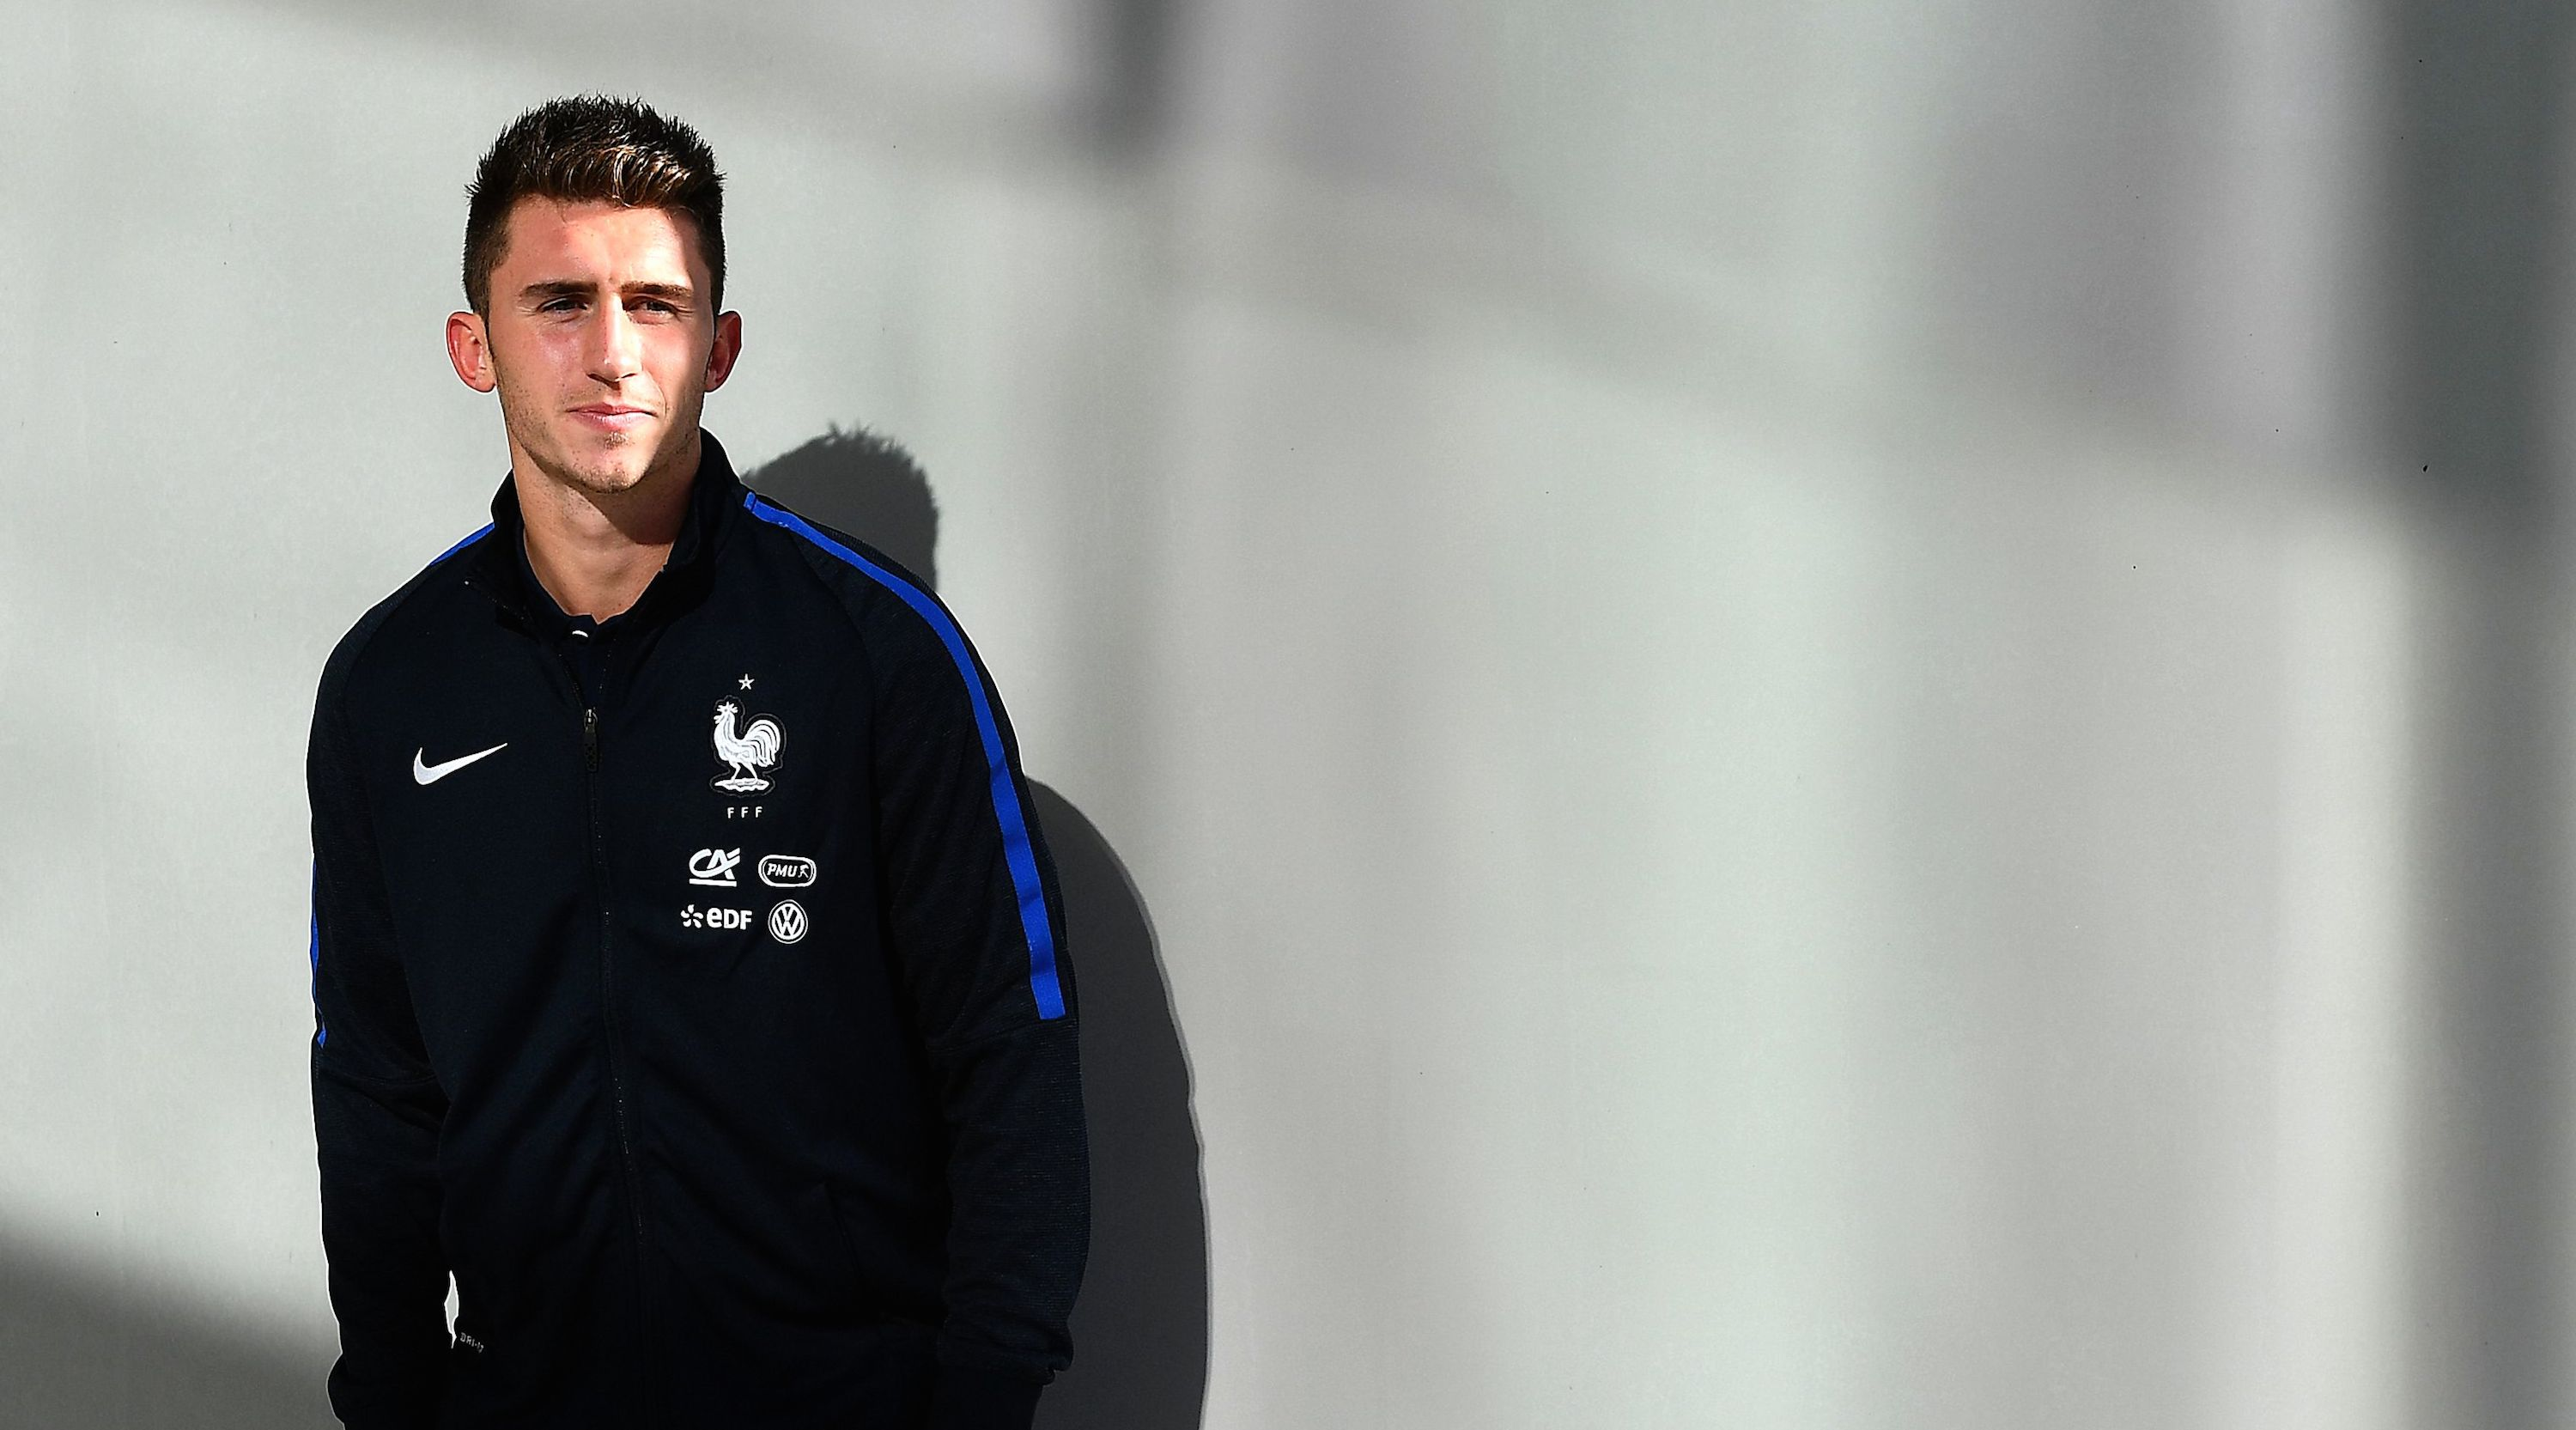 France's defender Aymeric Laporte poses at the end of a press conference in Clairefontaine-en-Yvelines near Paris on October 3, 2016 ahead of the 2018 FIFA World Cup football matches against Bulgaria on October 7 and the Netherlands on October 10. / AFP / FRANCK FIFE (Photo credit should read FRANCK FIFE/AFP/Getty Images)